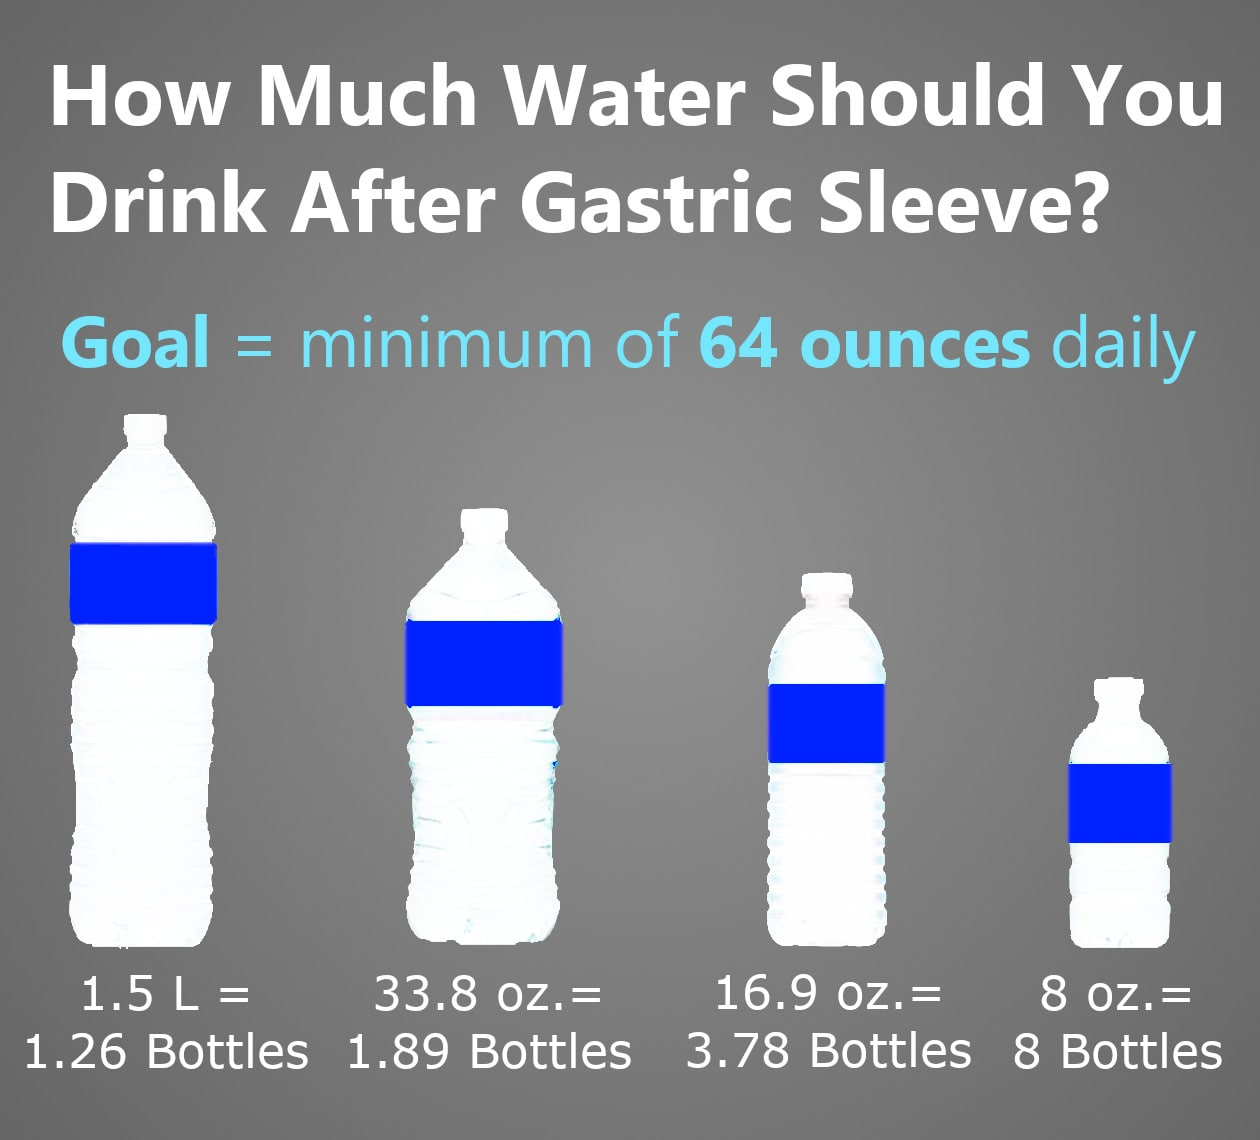 How Much Water Should You Drink After Gastric Sleeve - Dehydration After Gastric Sleeve Surgery